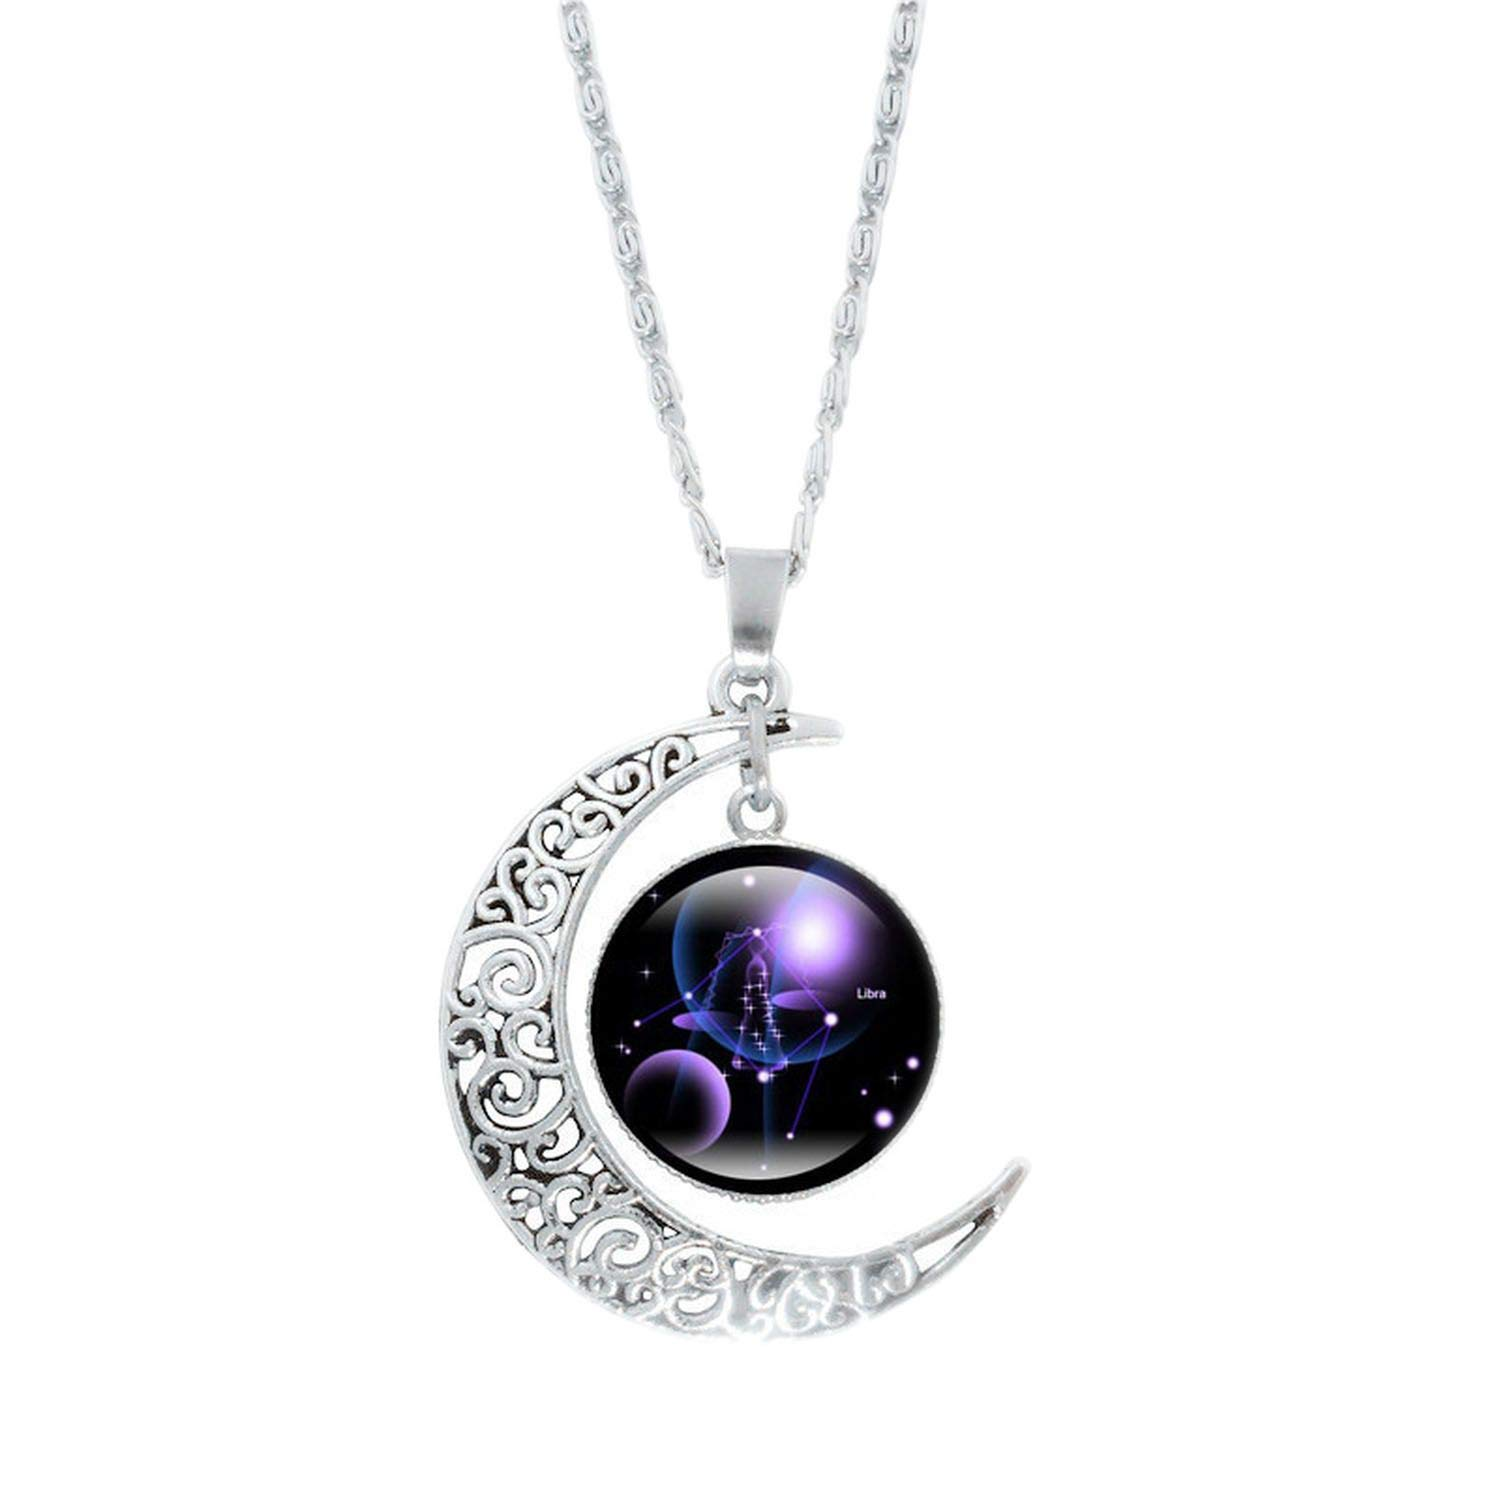 ihuoshang Constellation Glass Cabochon Pendant Necklace Silver Crescent Moon Jewelry Chain Necklace Women Girl